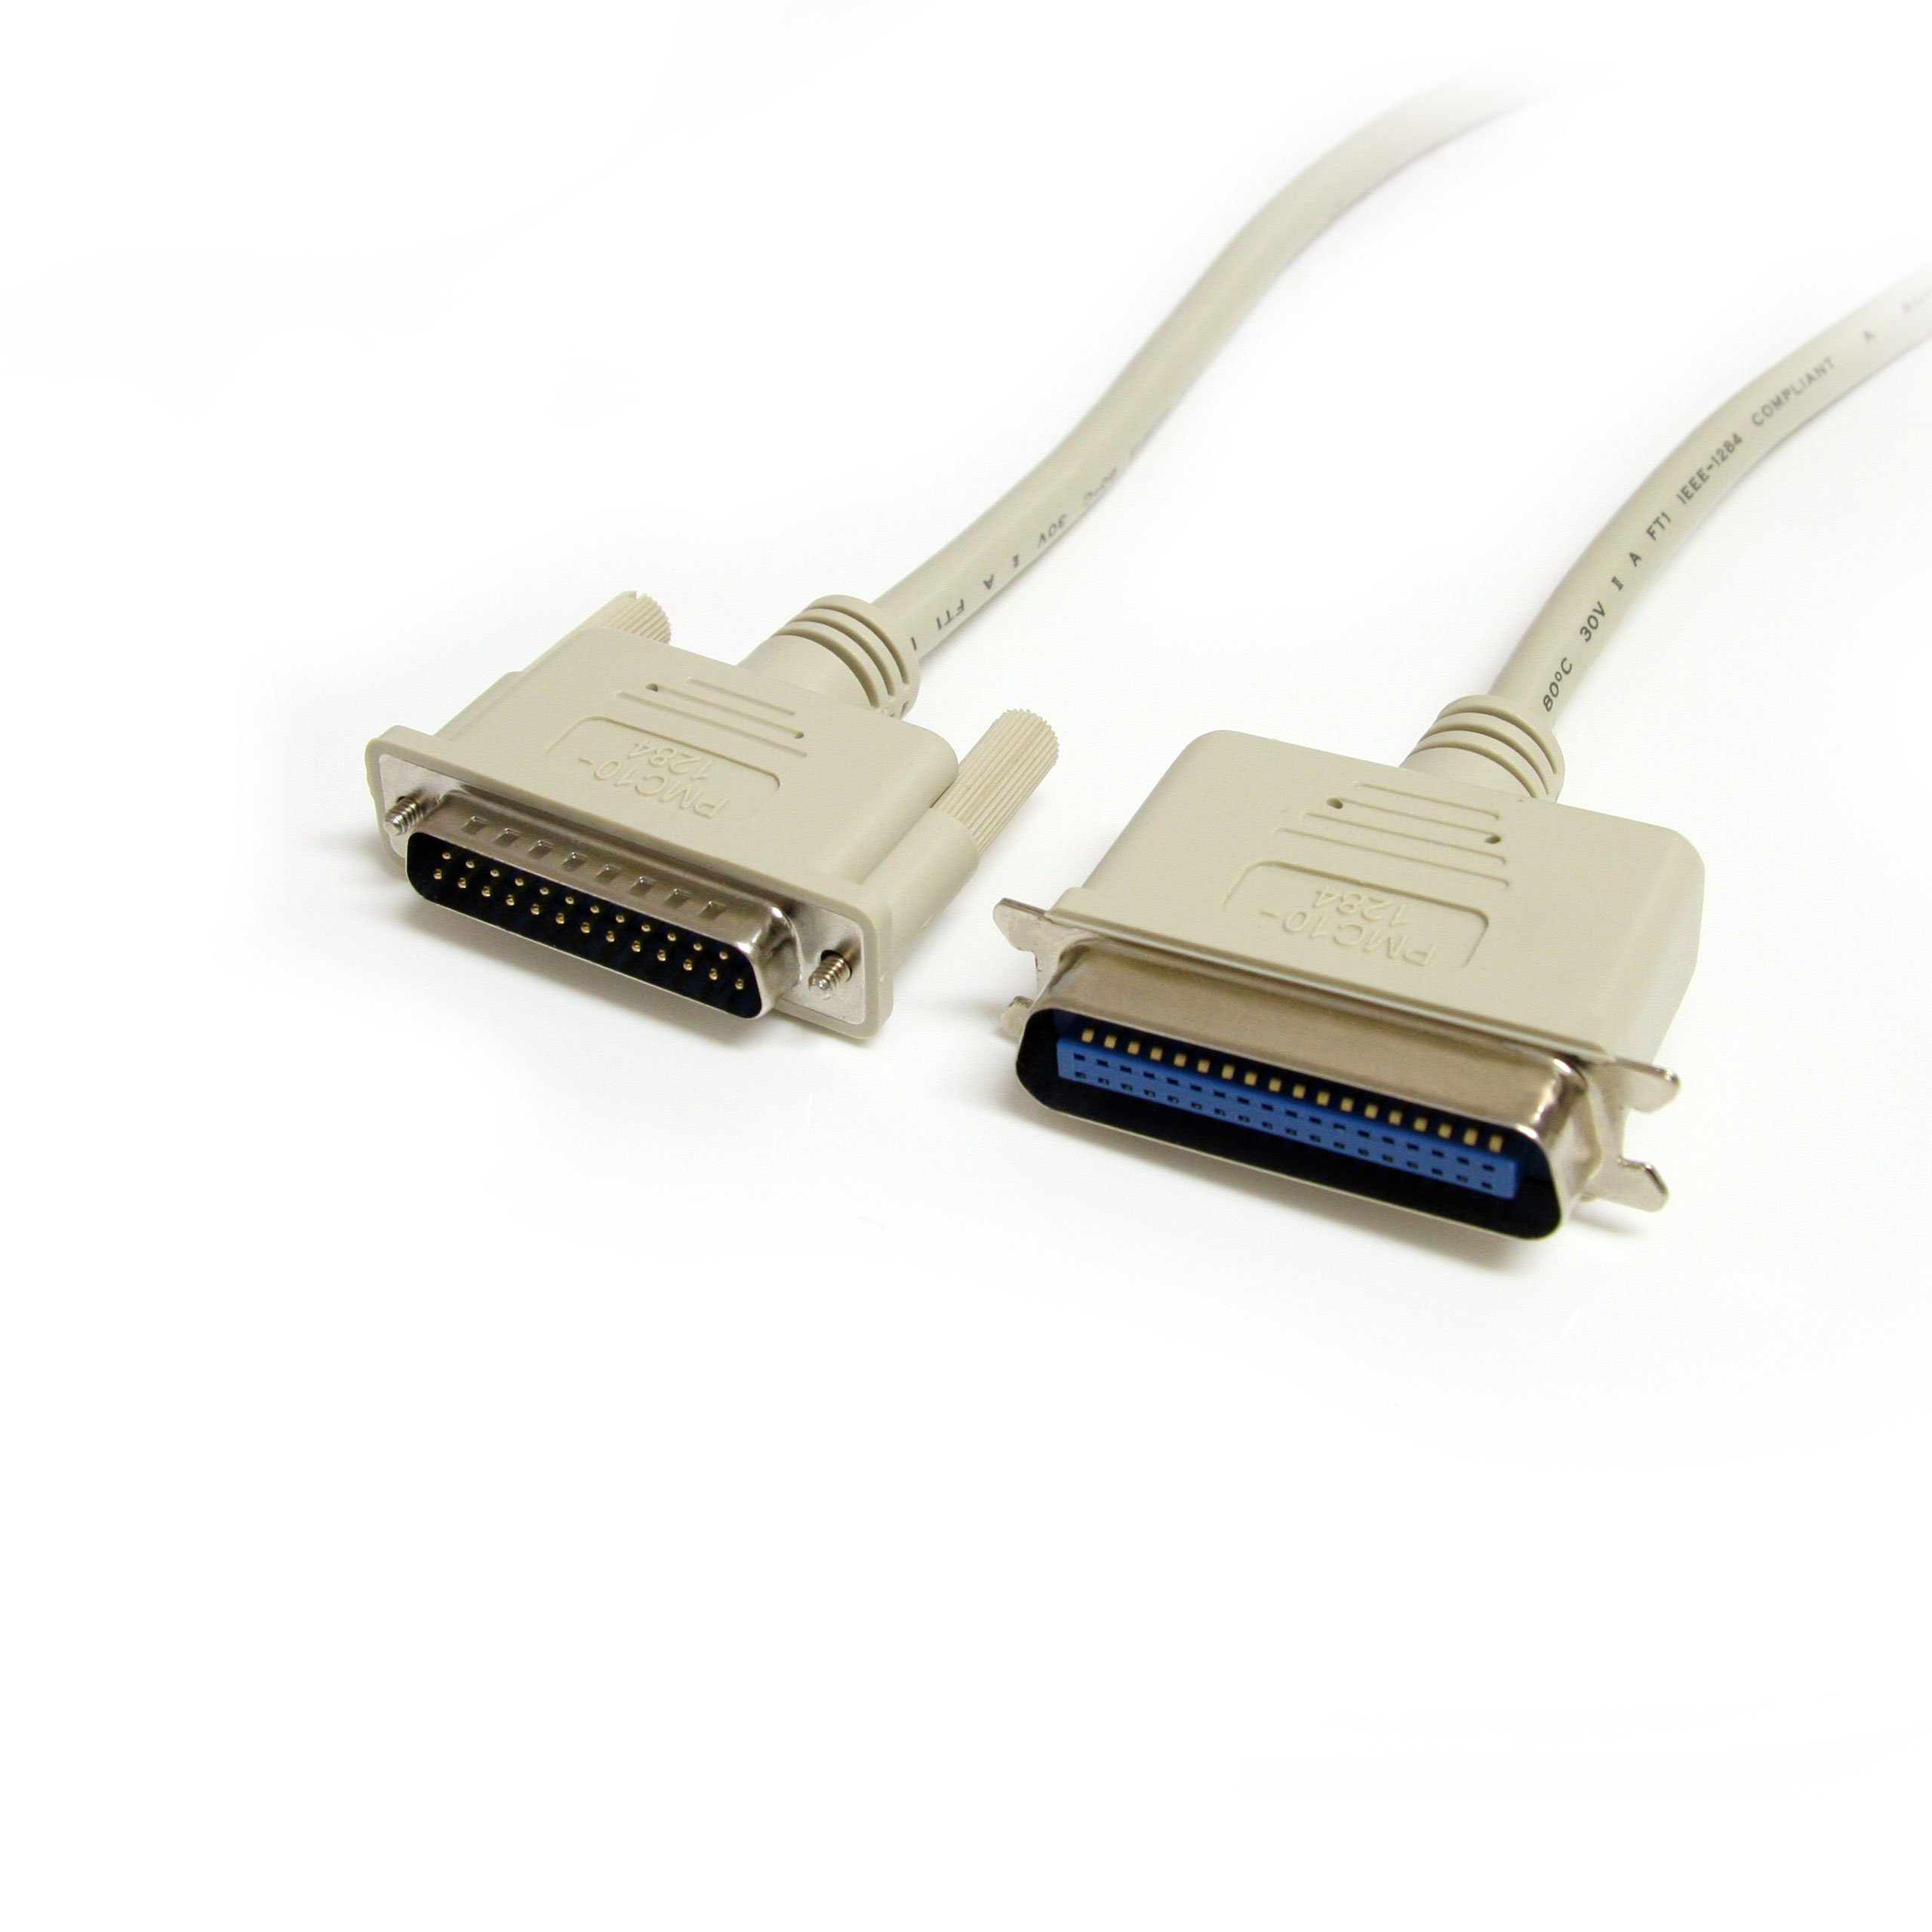 StarTech.com 10-Feet DB25 to Centronics 36 IEEE-1284 Parallel Printer Cable - M/M(PMC10_1284)